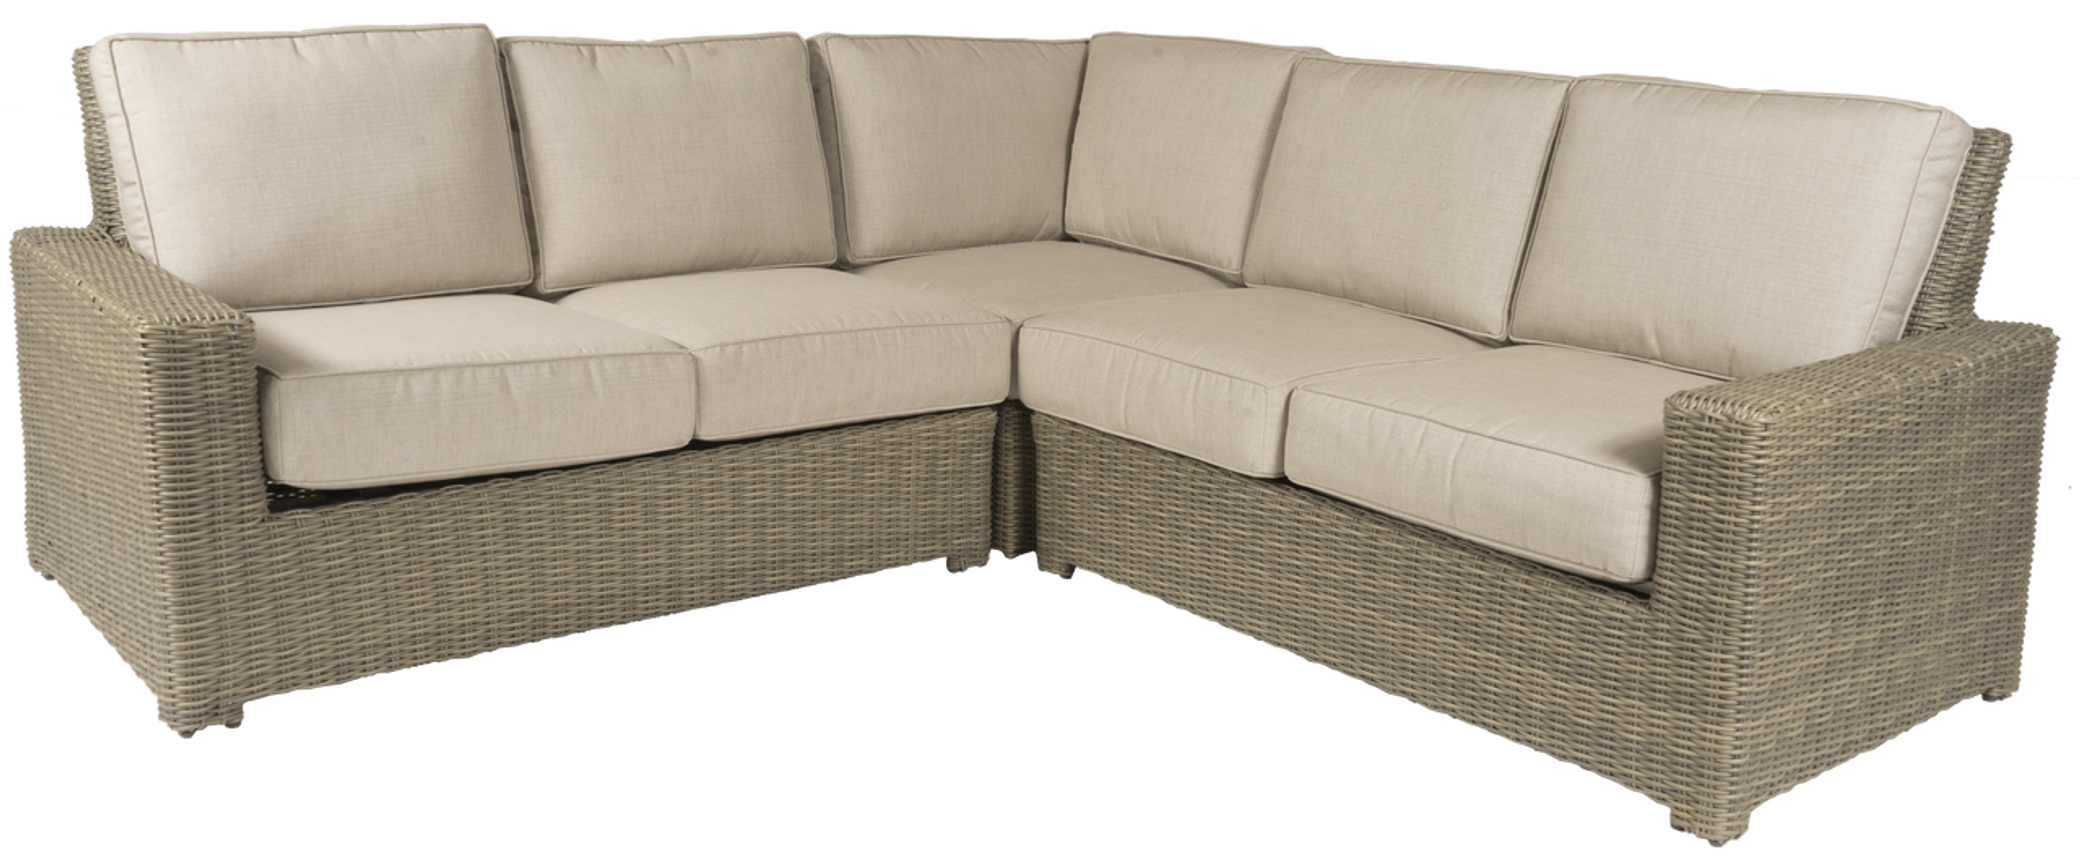 Outdoor sectional Teak Erwin Napa Outdoor Sectional Sofa Wcushions ships In 46 Weeks Real Simple Erwin Napa Outdoor Sectional Sofa Wcushions